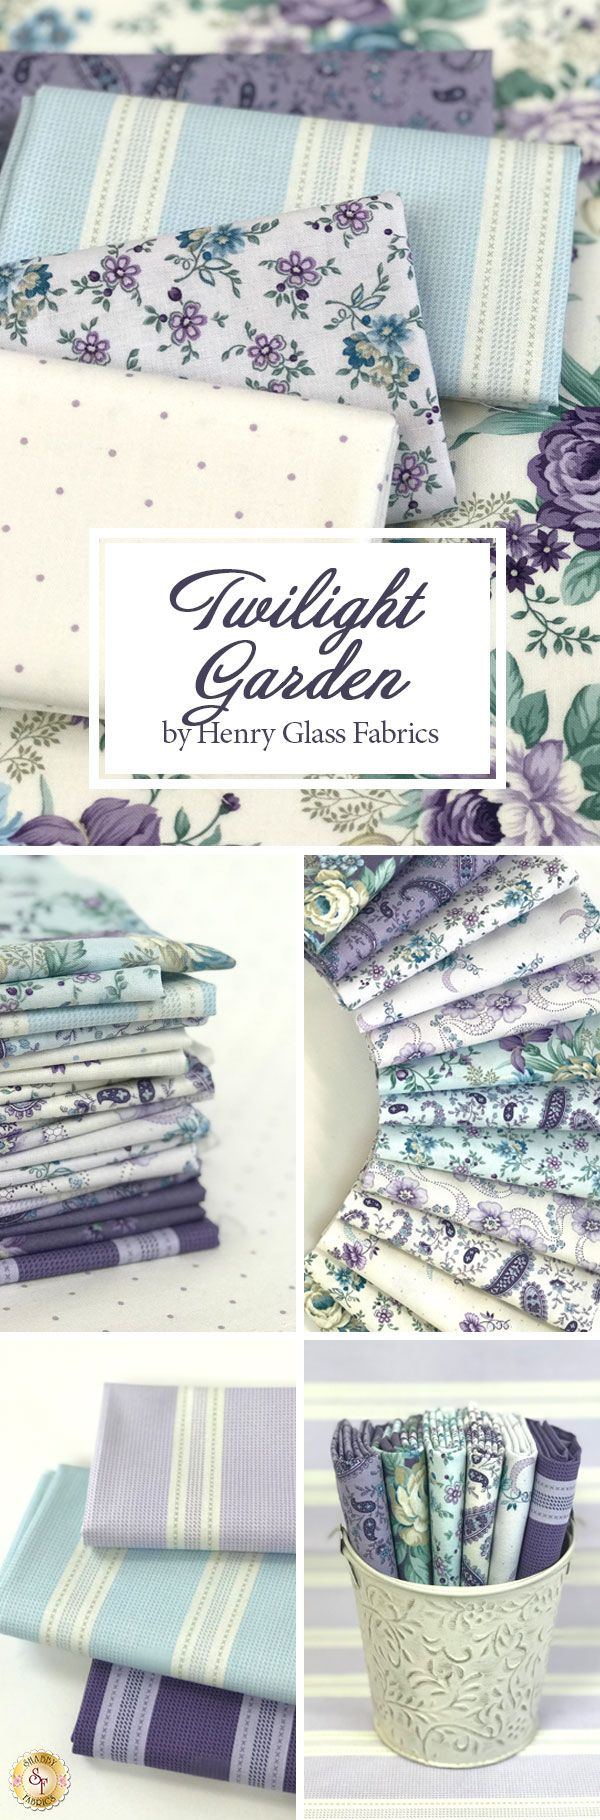 Twilight Garden from Henry Glass Fabrics by Mary Jane Carey is a romantic floral collection available at Shabby Fabrics